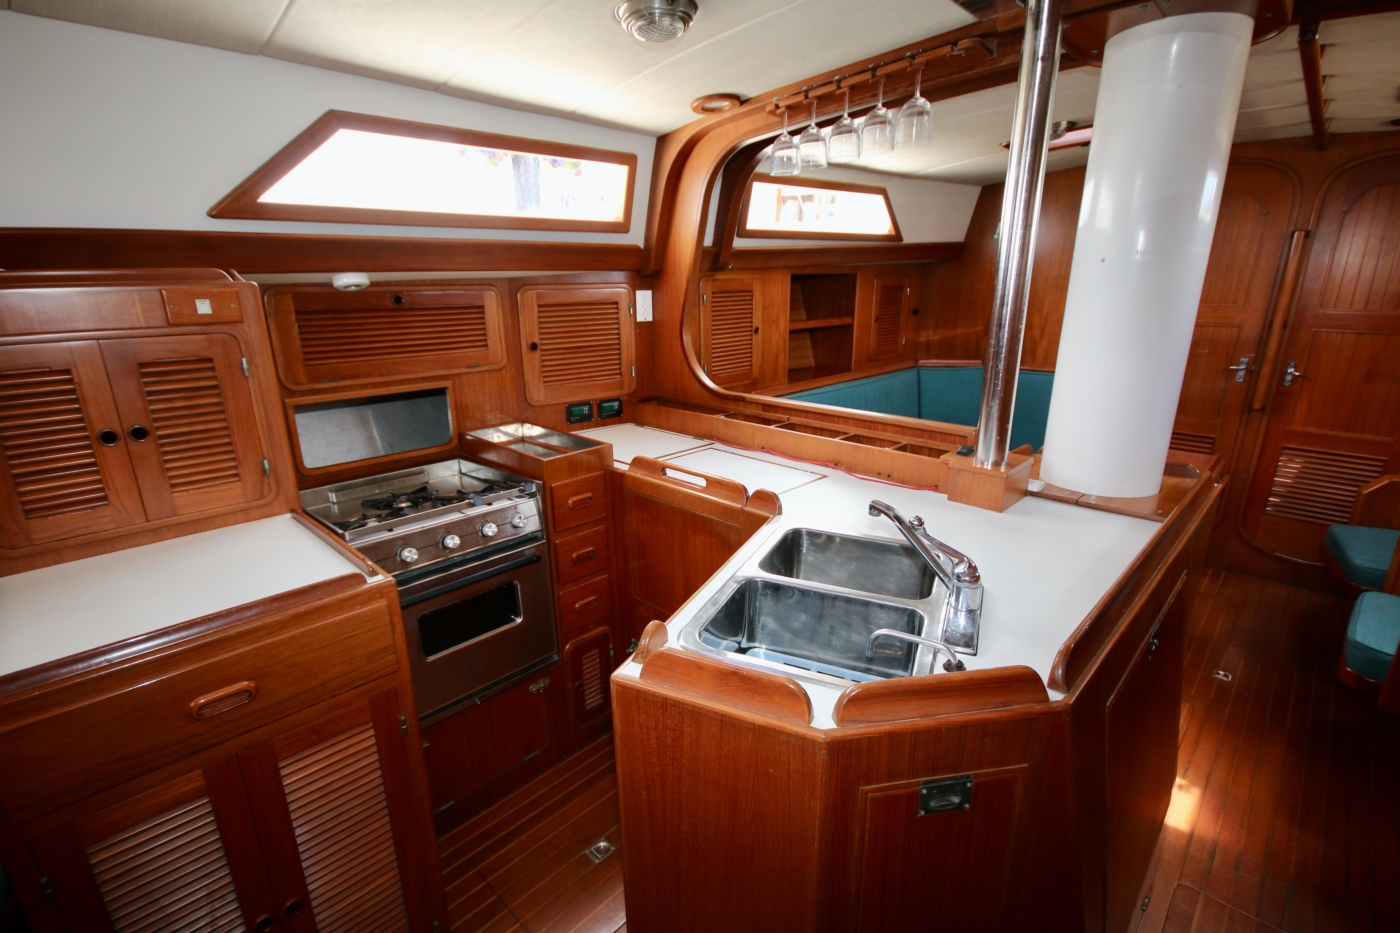 1996 Tanton 45 Offshore, Galley